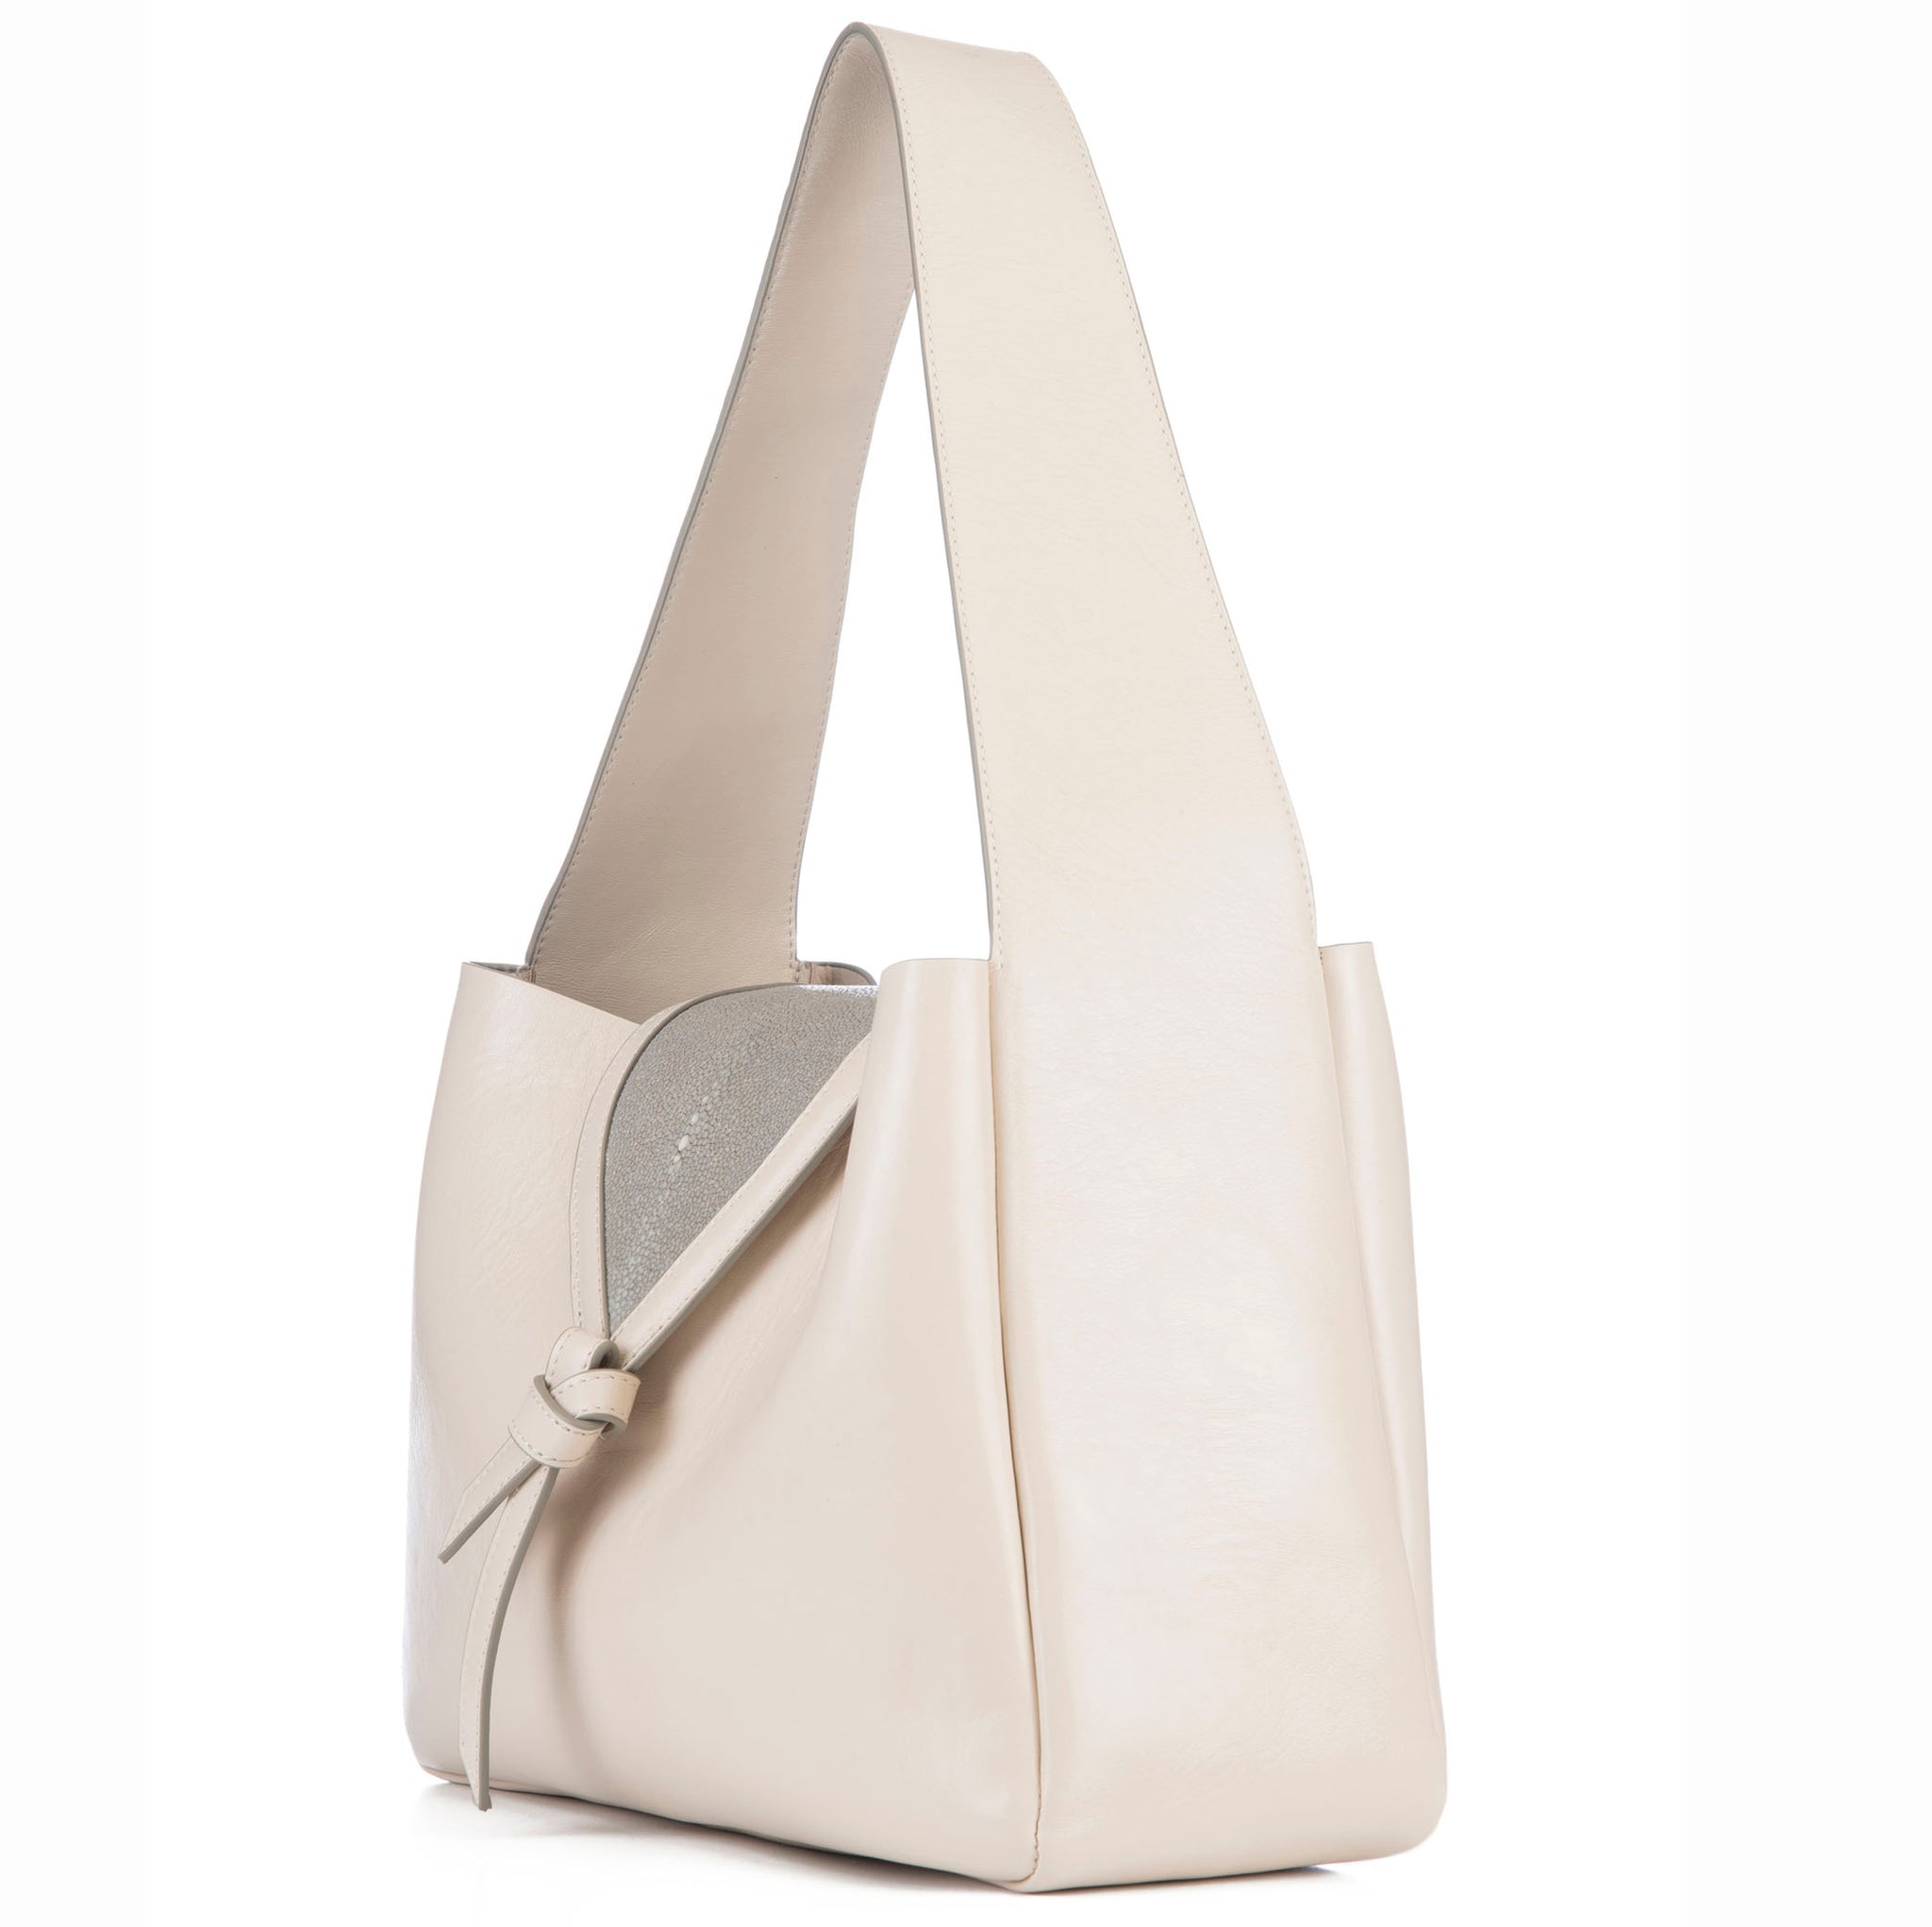 Eve Ivory Leather Shoulder Tote With Cement Shagreen Flap And Leather Knot Detail Side View - Vivo Direct